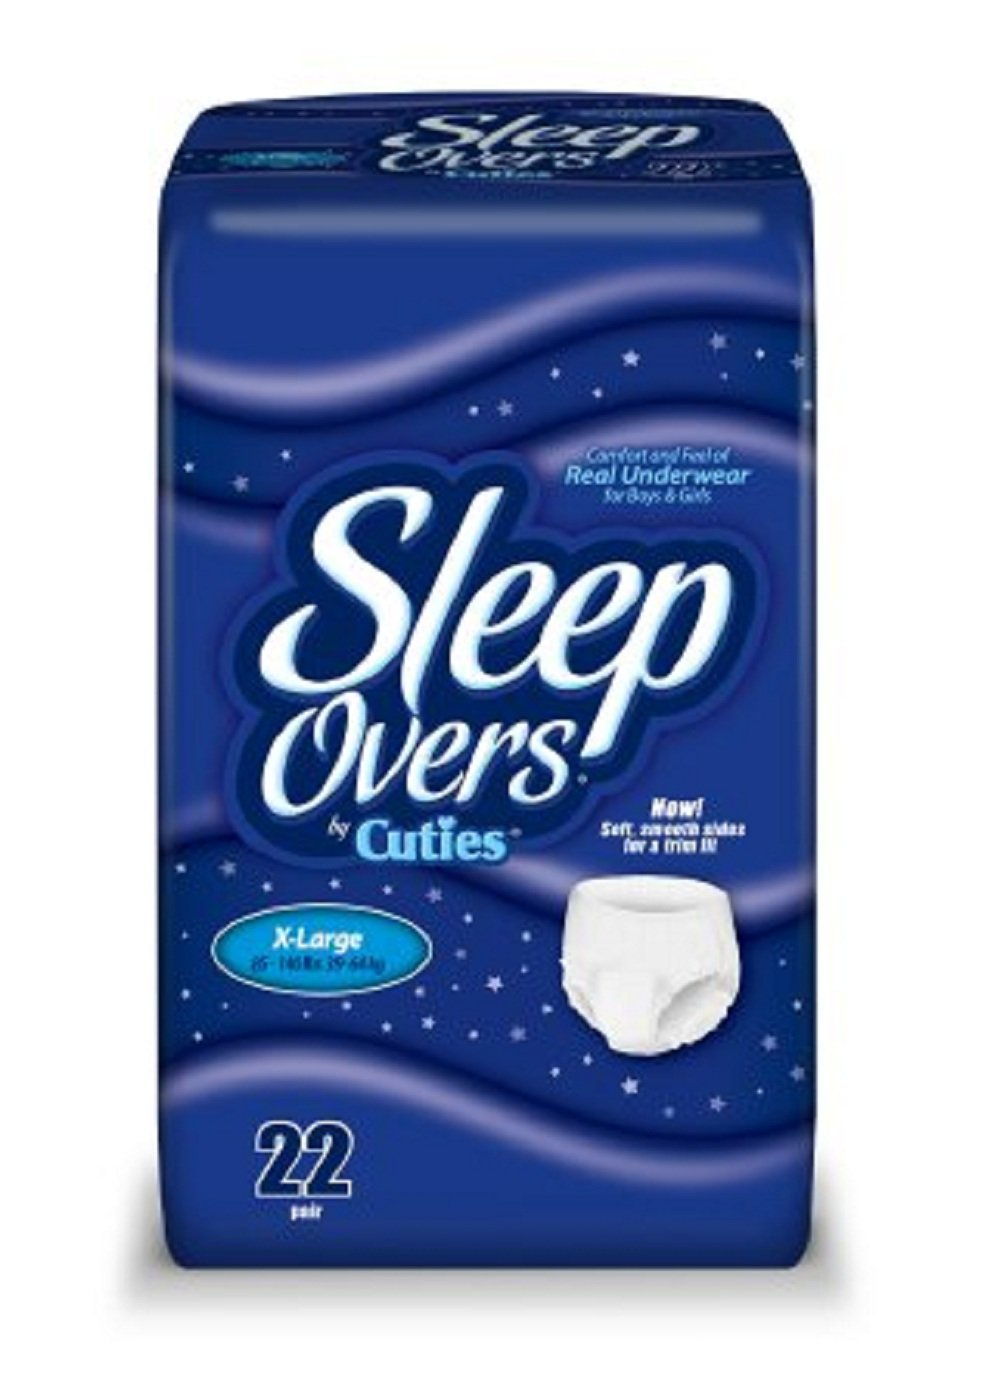 Cuties - Sleep Overs - Youth Absorbent Underwear - Pull On X-Large Disposable Heavy Absorbency - 88/Case - McK